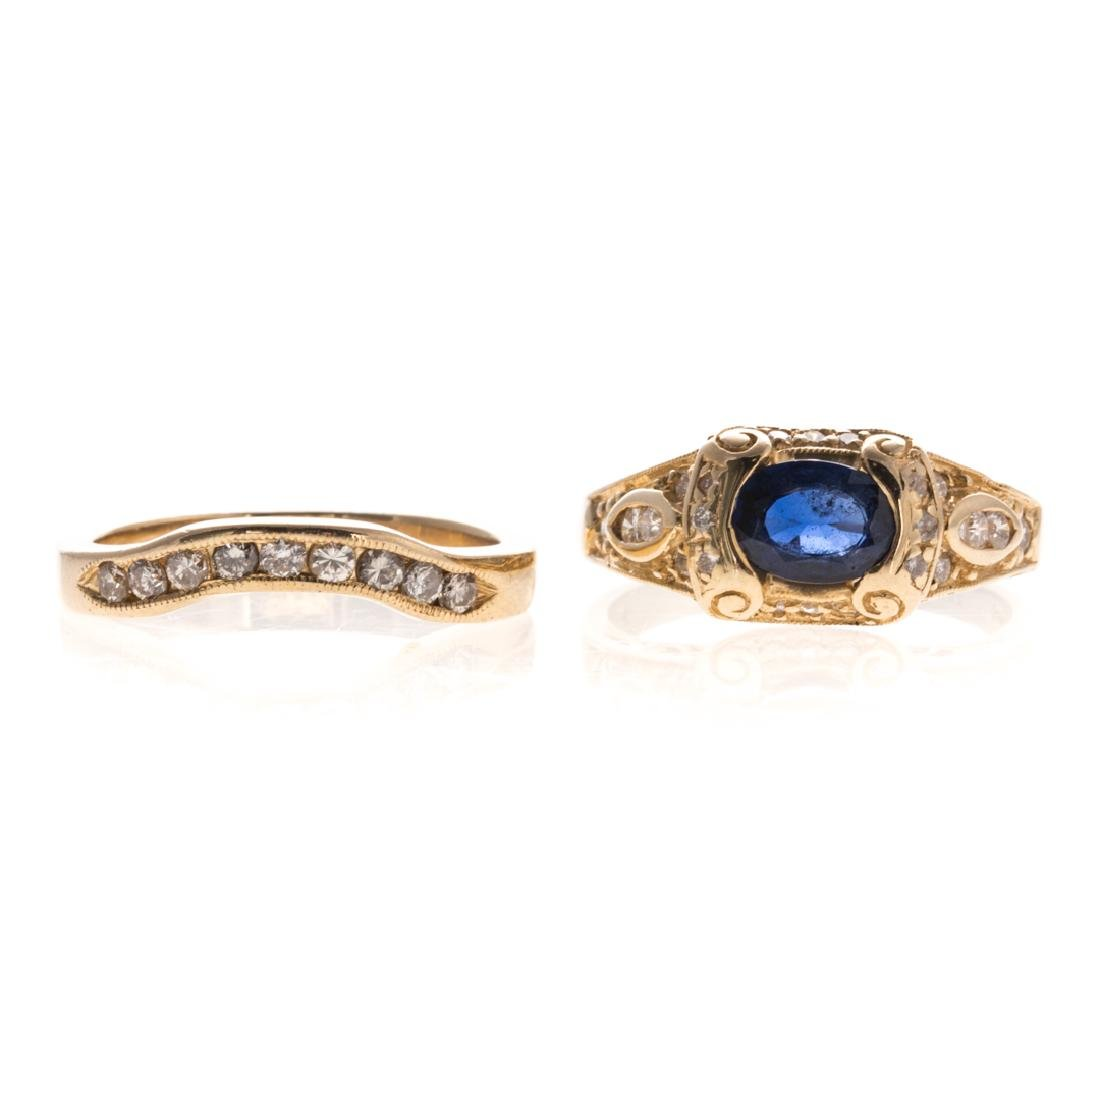 A Lady's Sapphire & Diamond Engagement Set in 14K - 2